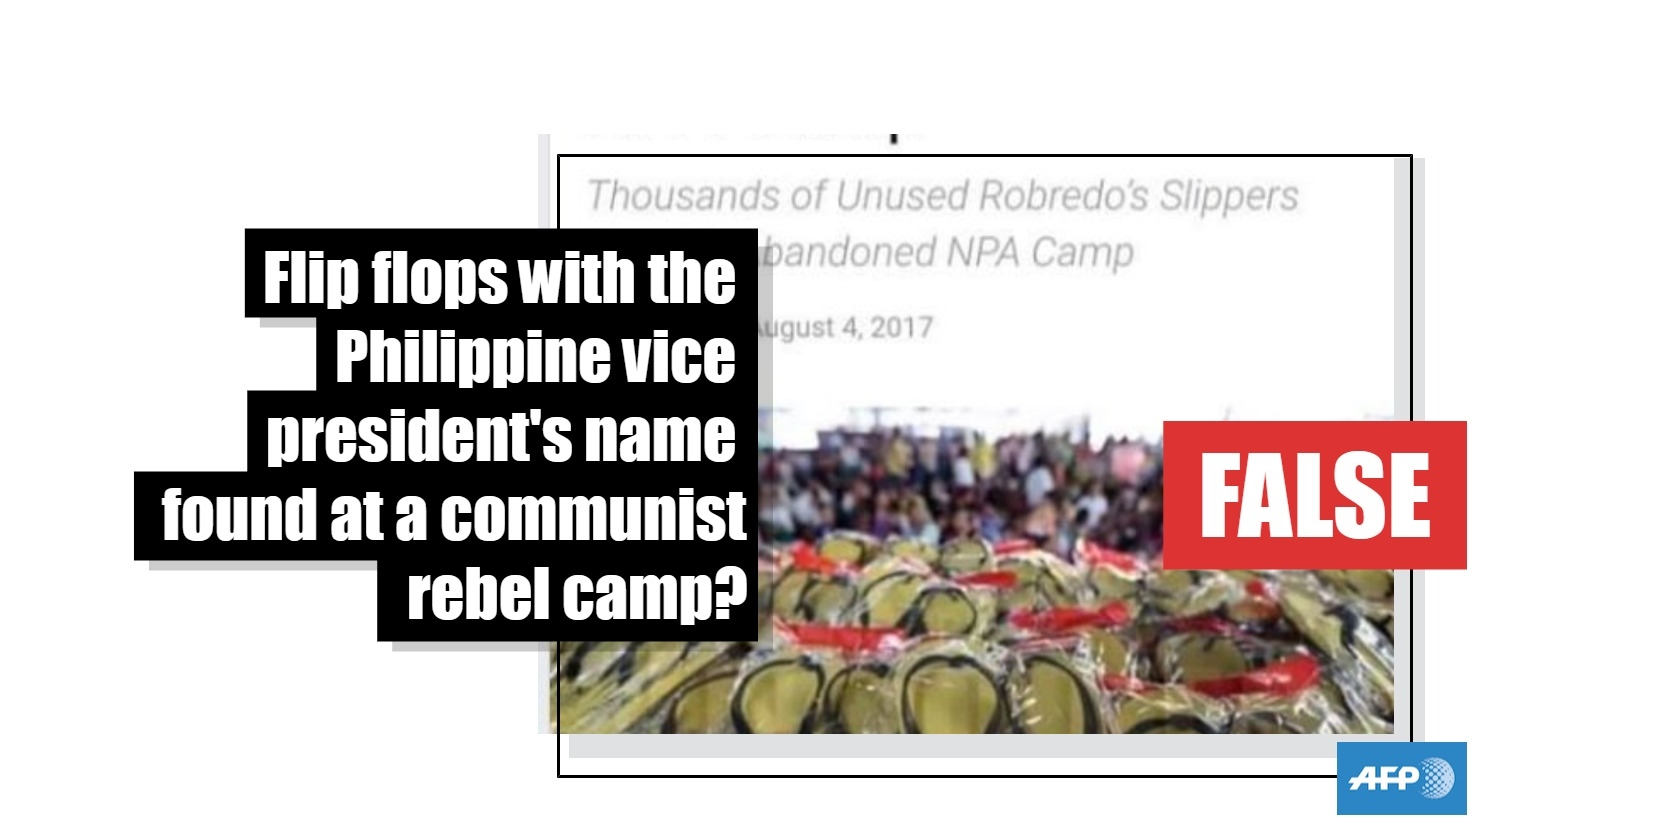 No, this photo does not show flip flops with the Philippine vice president's name at an abandoned communist rebel camp